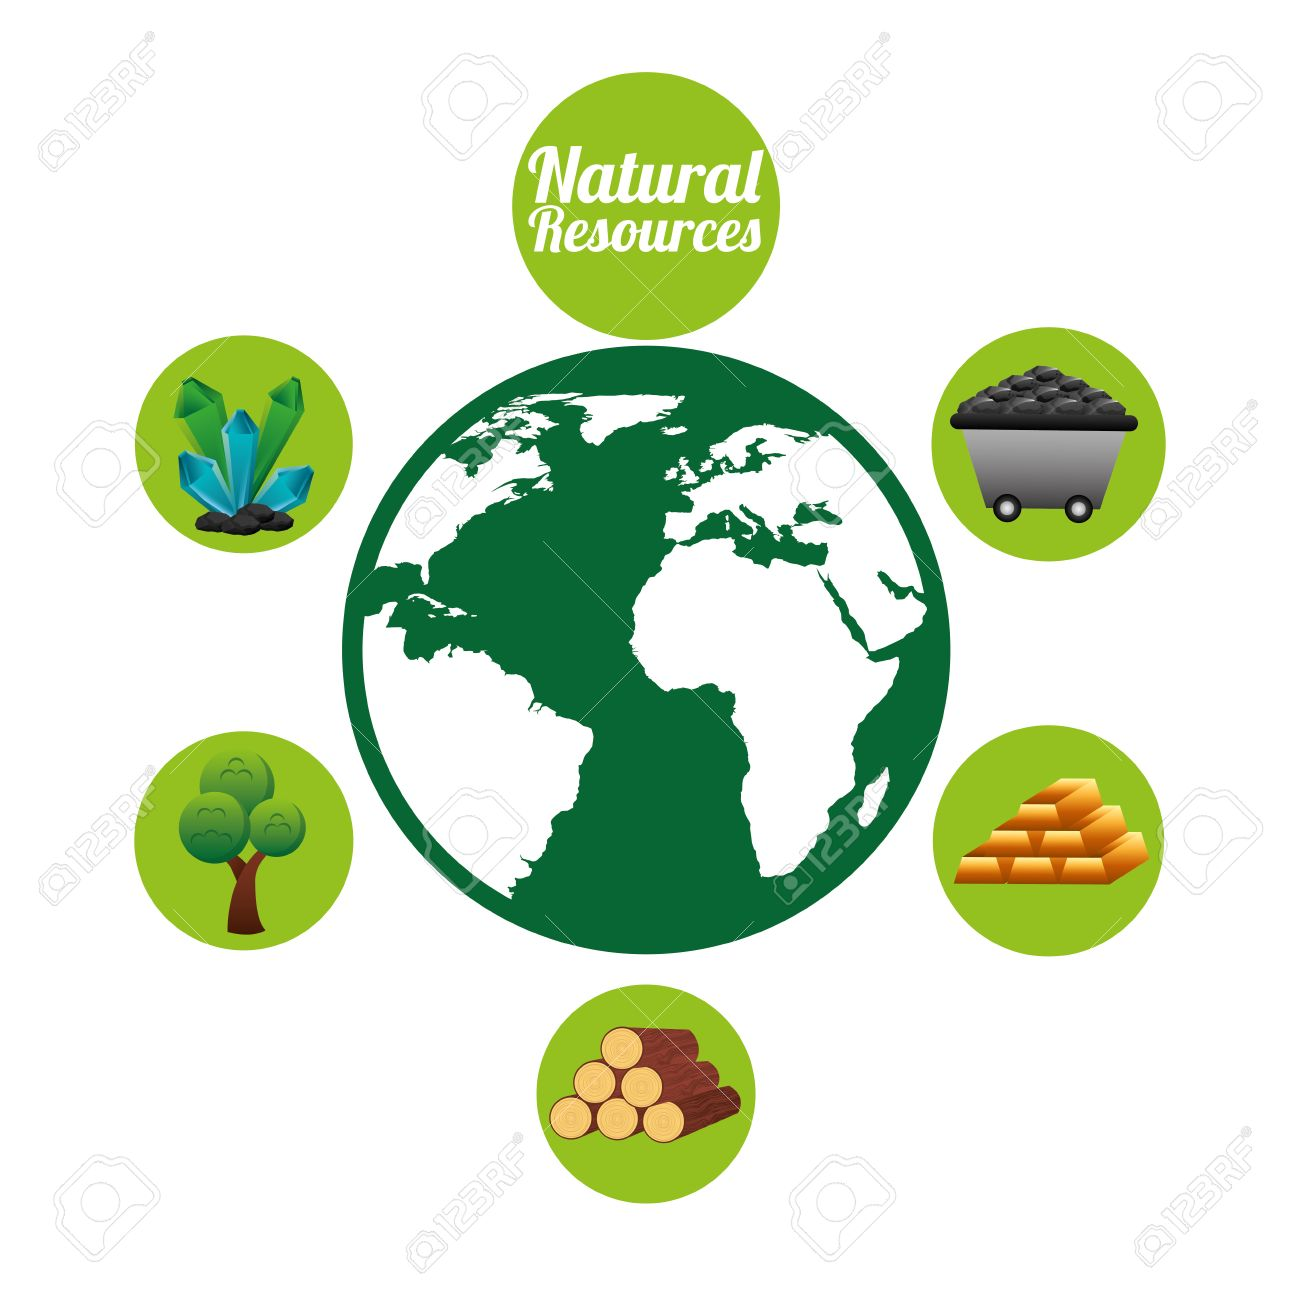 Natural Resources Design Royalty Free Cliparts, Vectors, And Stock ...